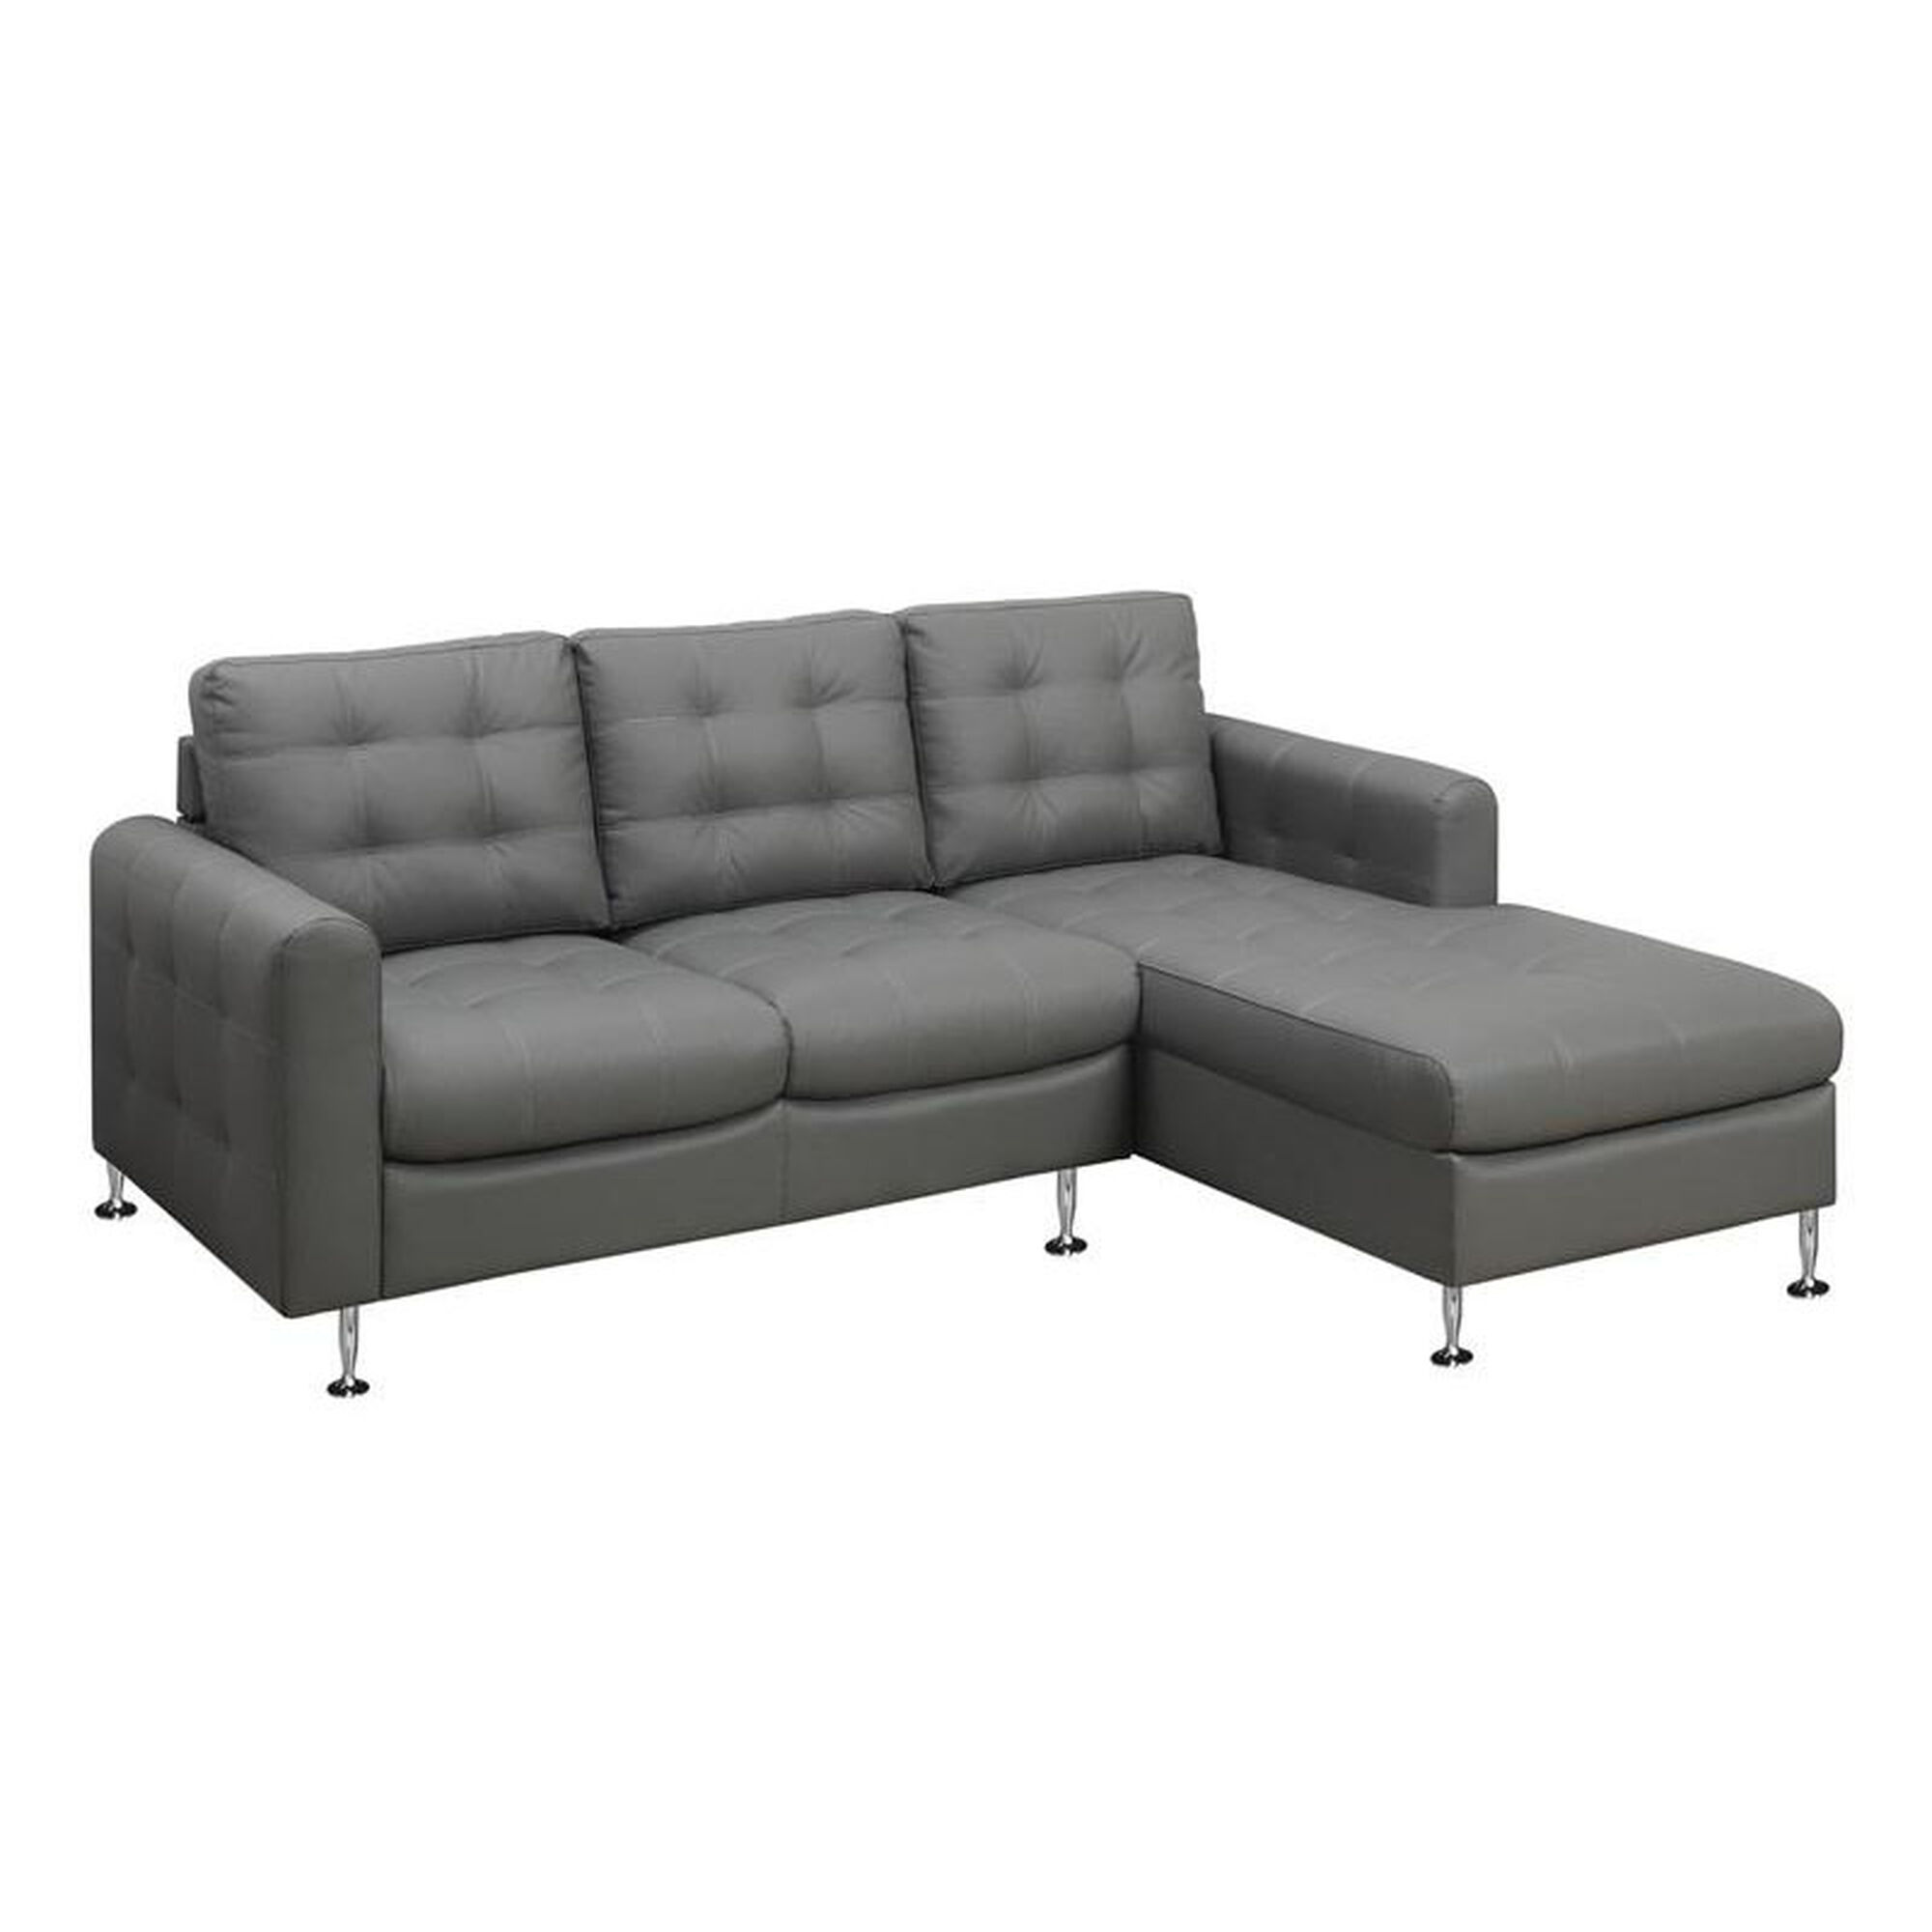 Monarch specialties bonded leather sofa with chaise for Bonded leather chaise